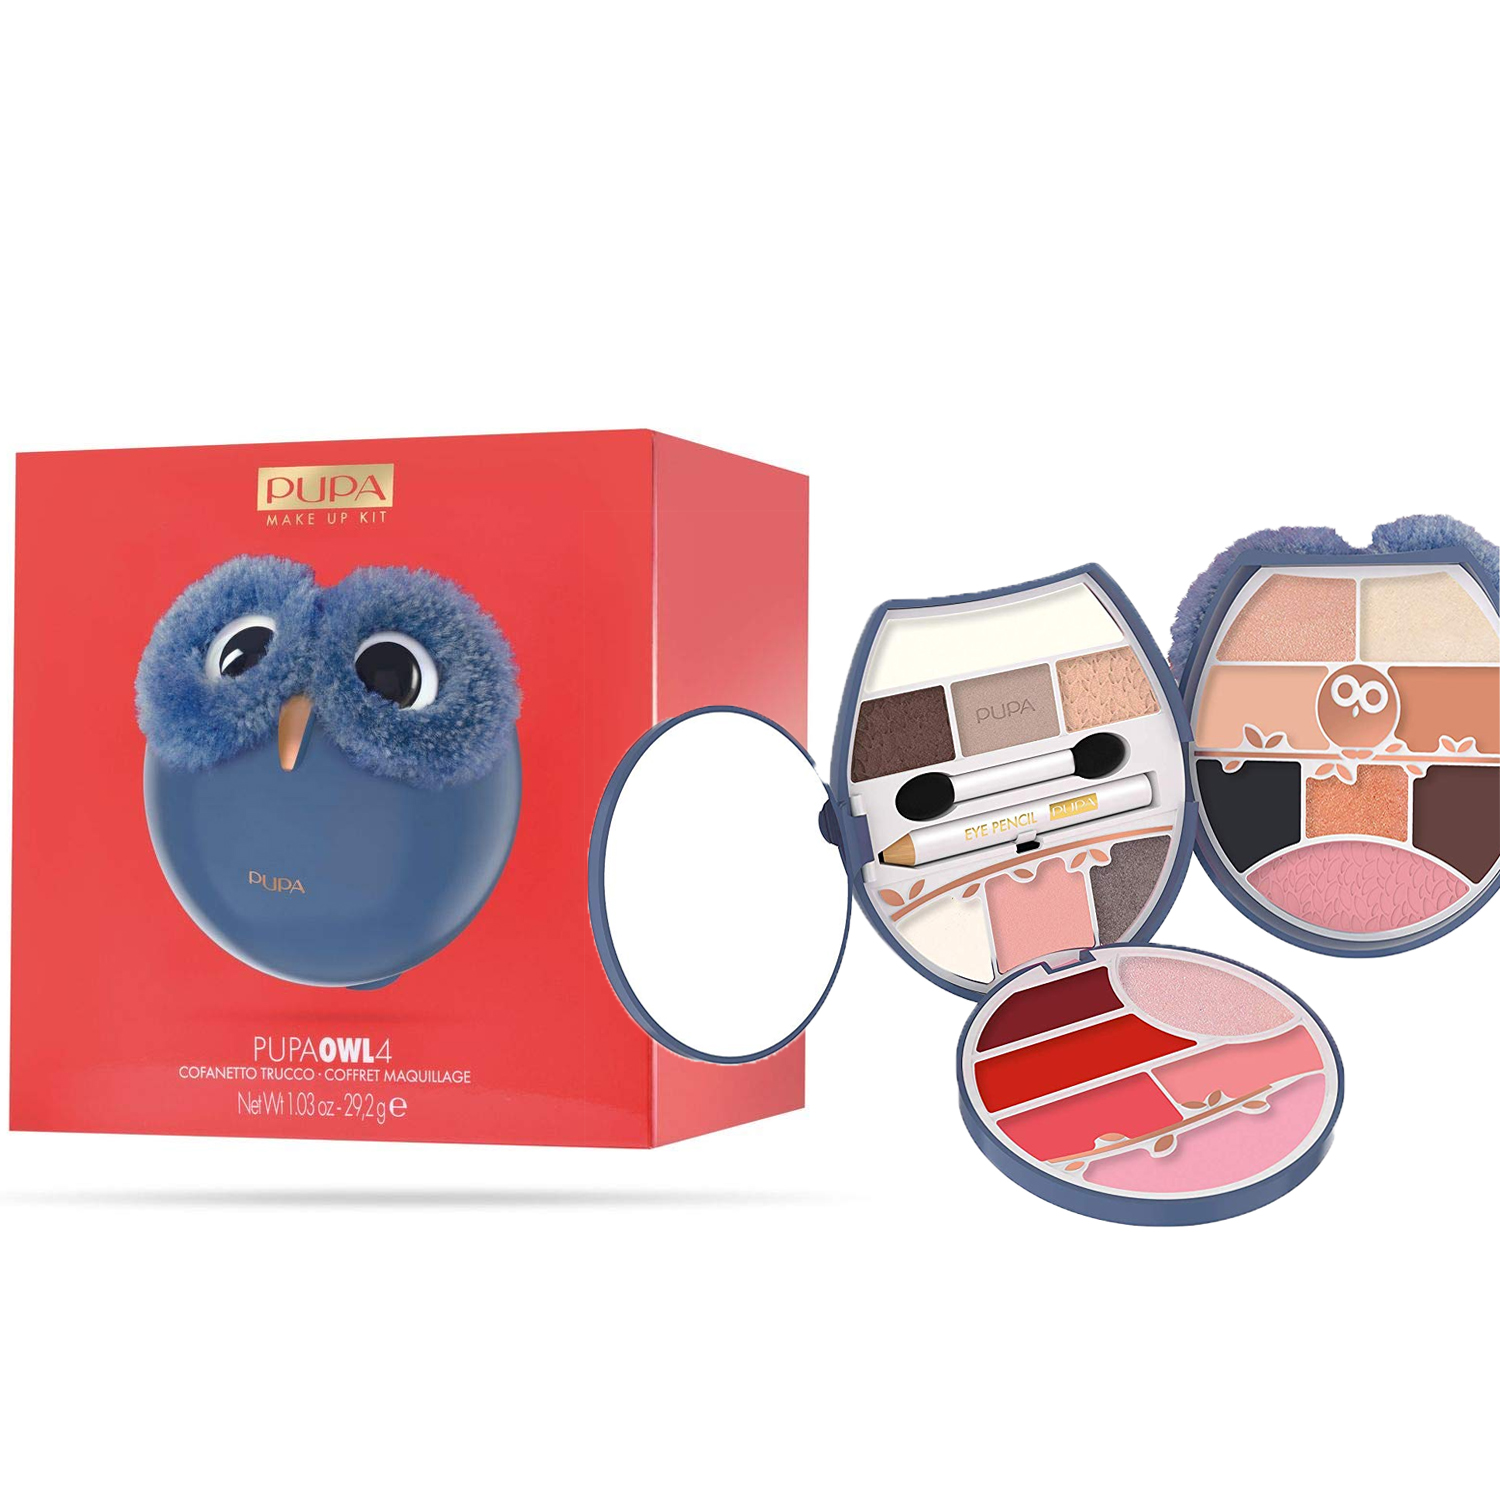 COFANETTO TRUCCHI PUPA OWL4 002 MAKE UP KIT GUFO GUFETTO GRANDE